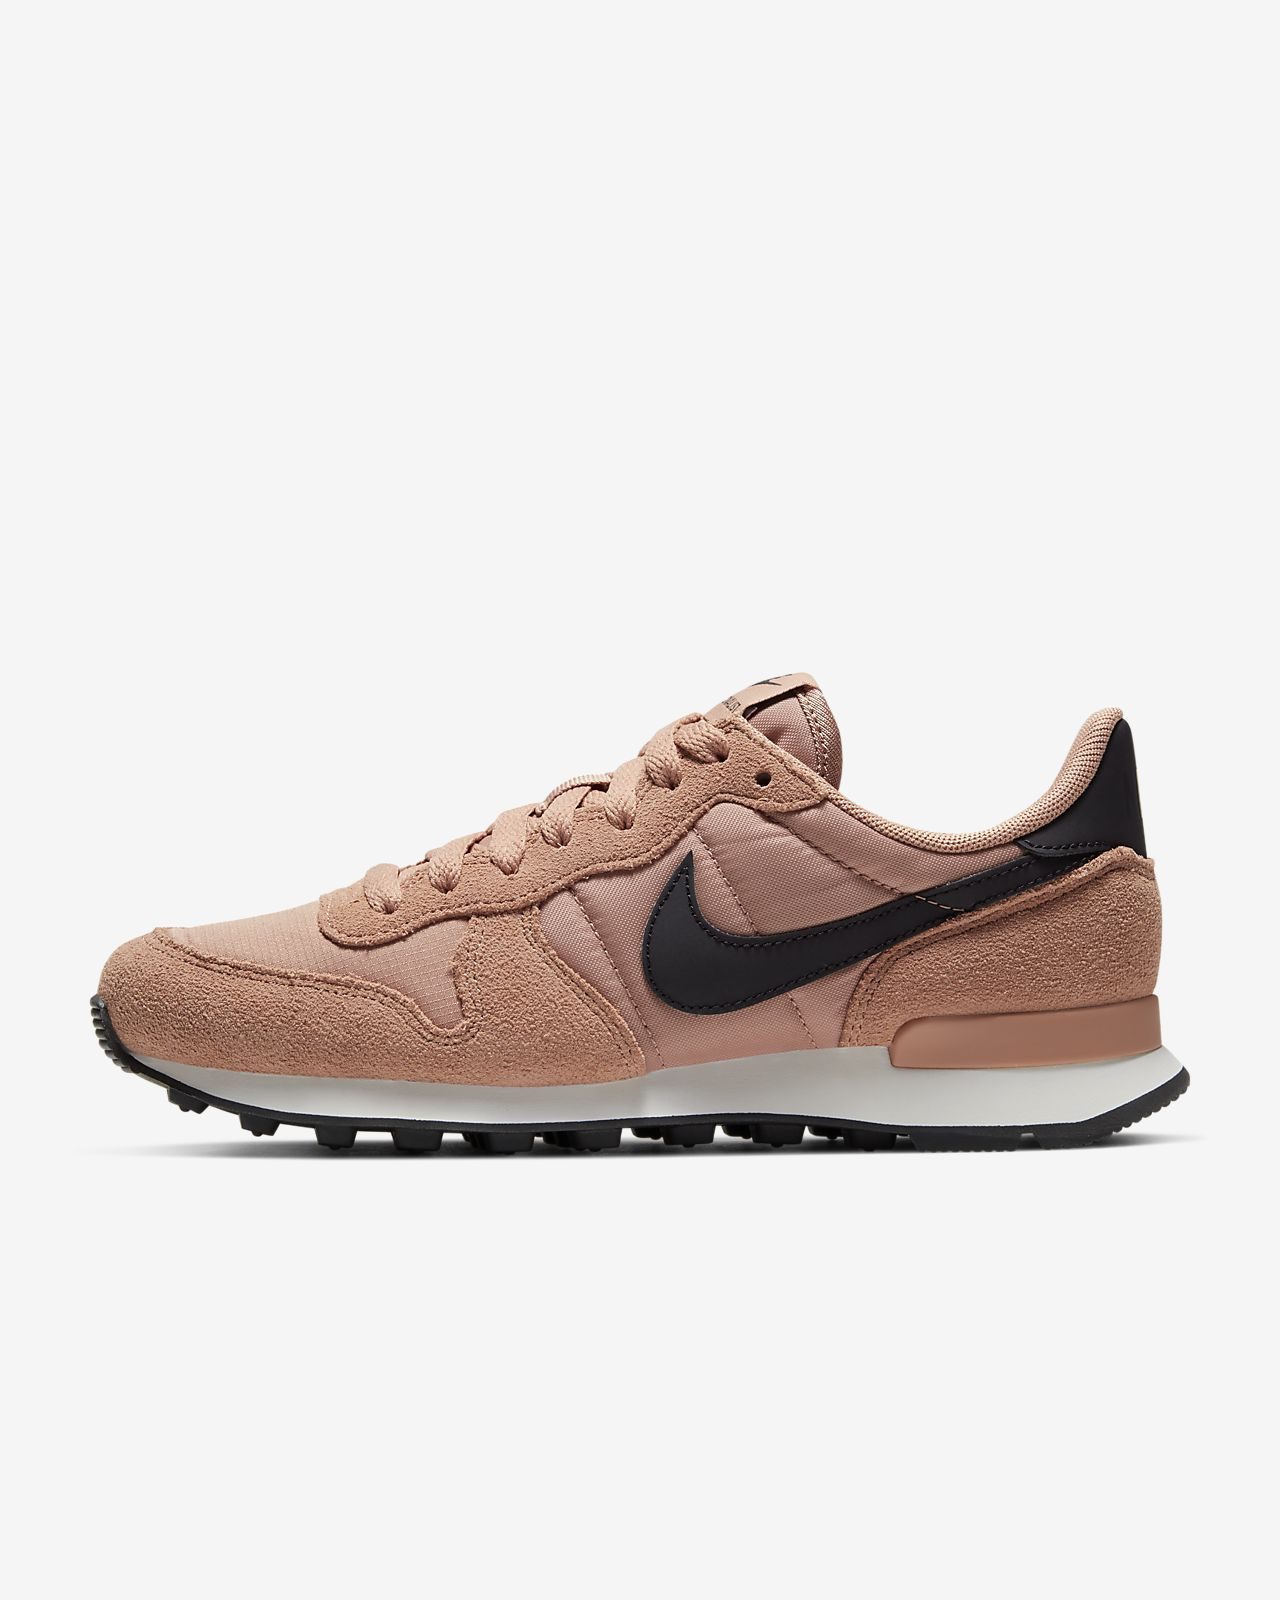 quality design a230b 84f7e Women s Shoe. Nike Internationalist